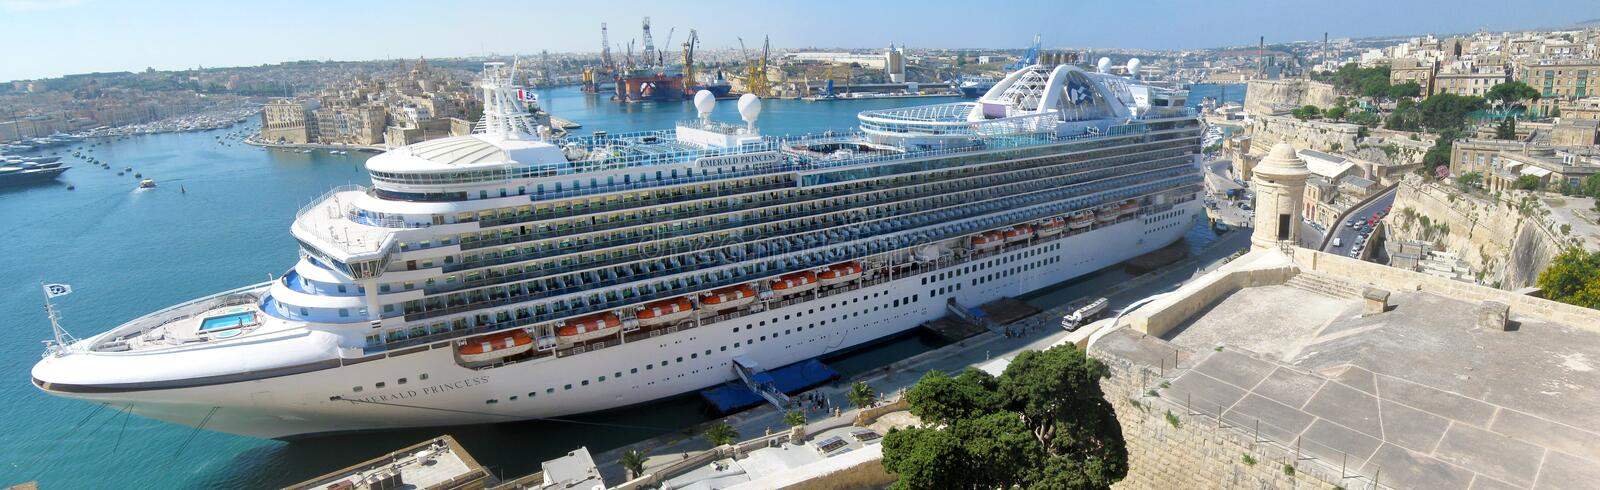 Cruise ship in Malta stock images